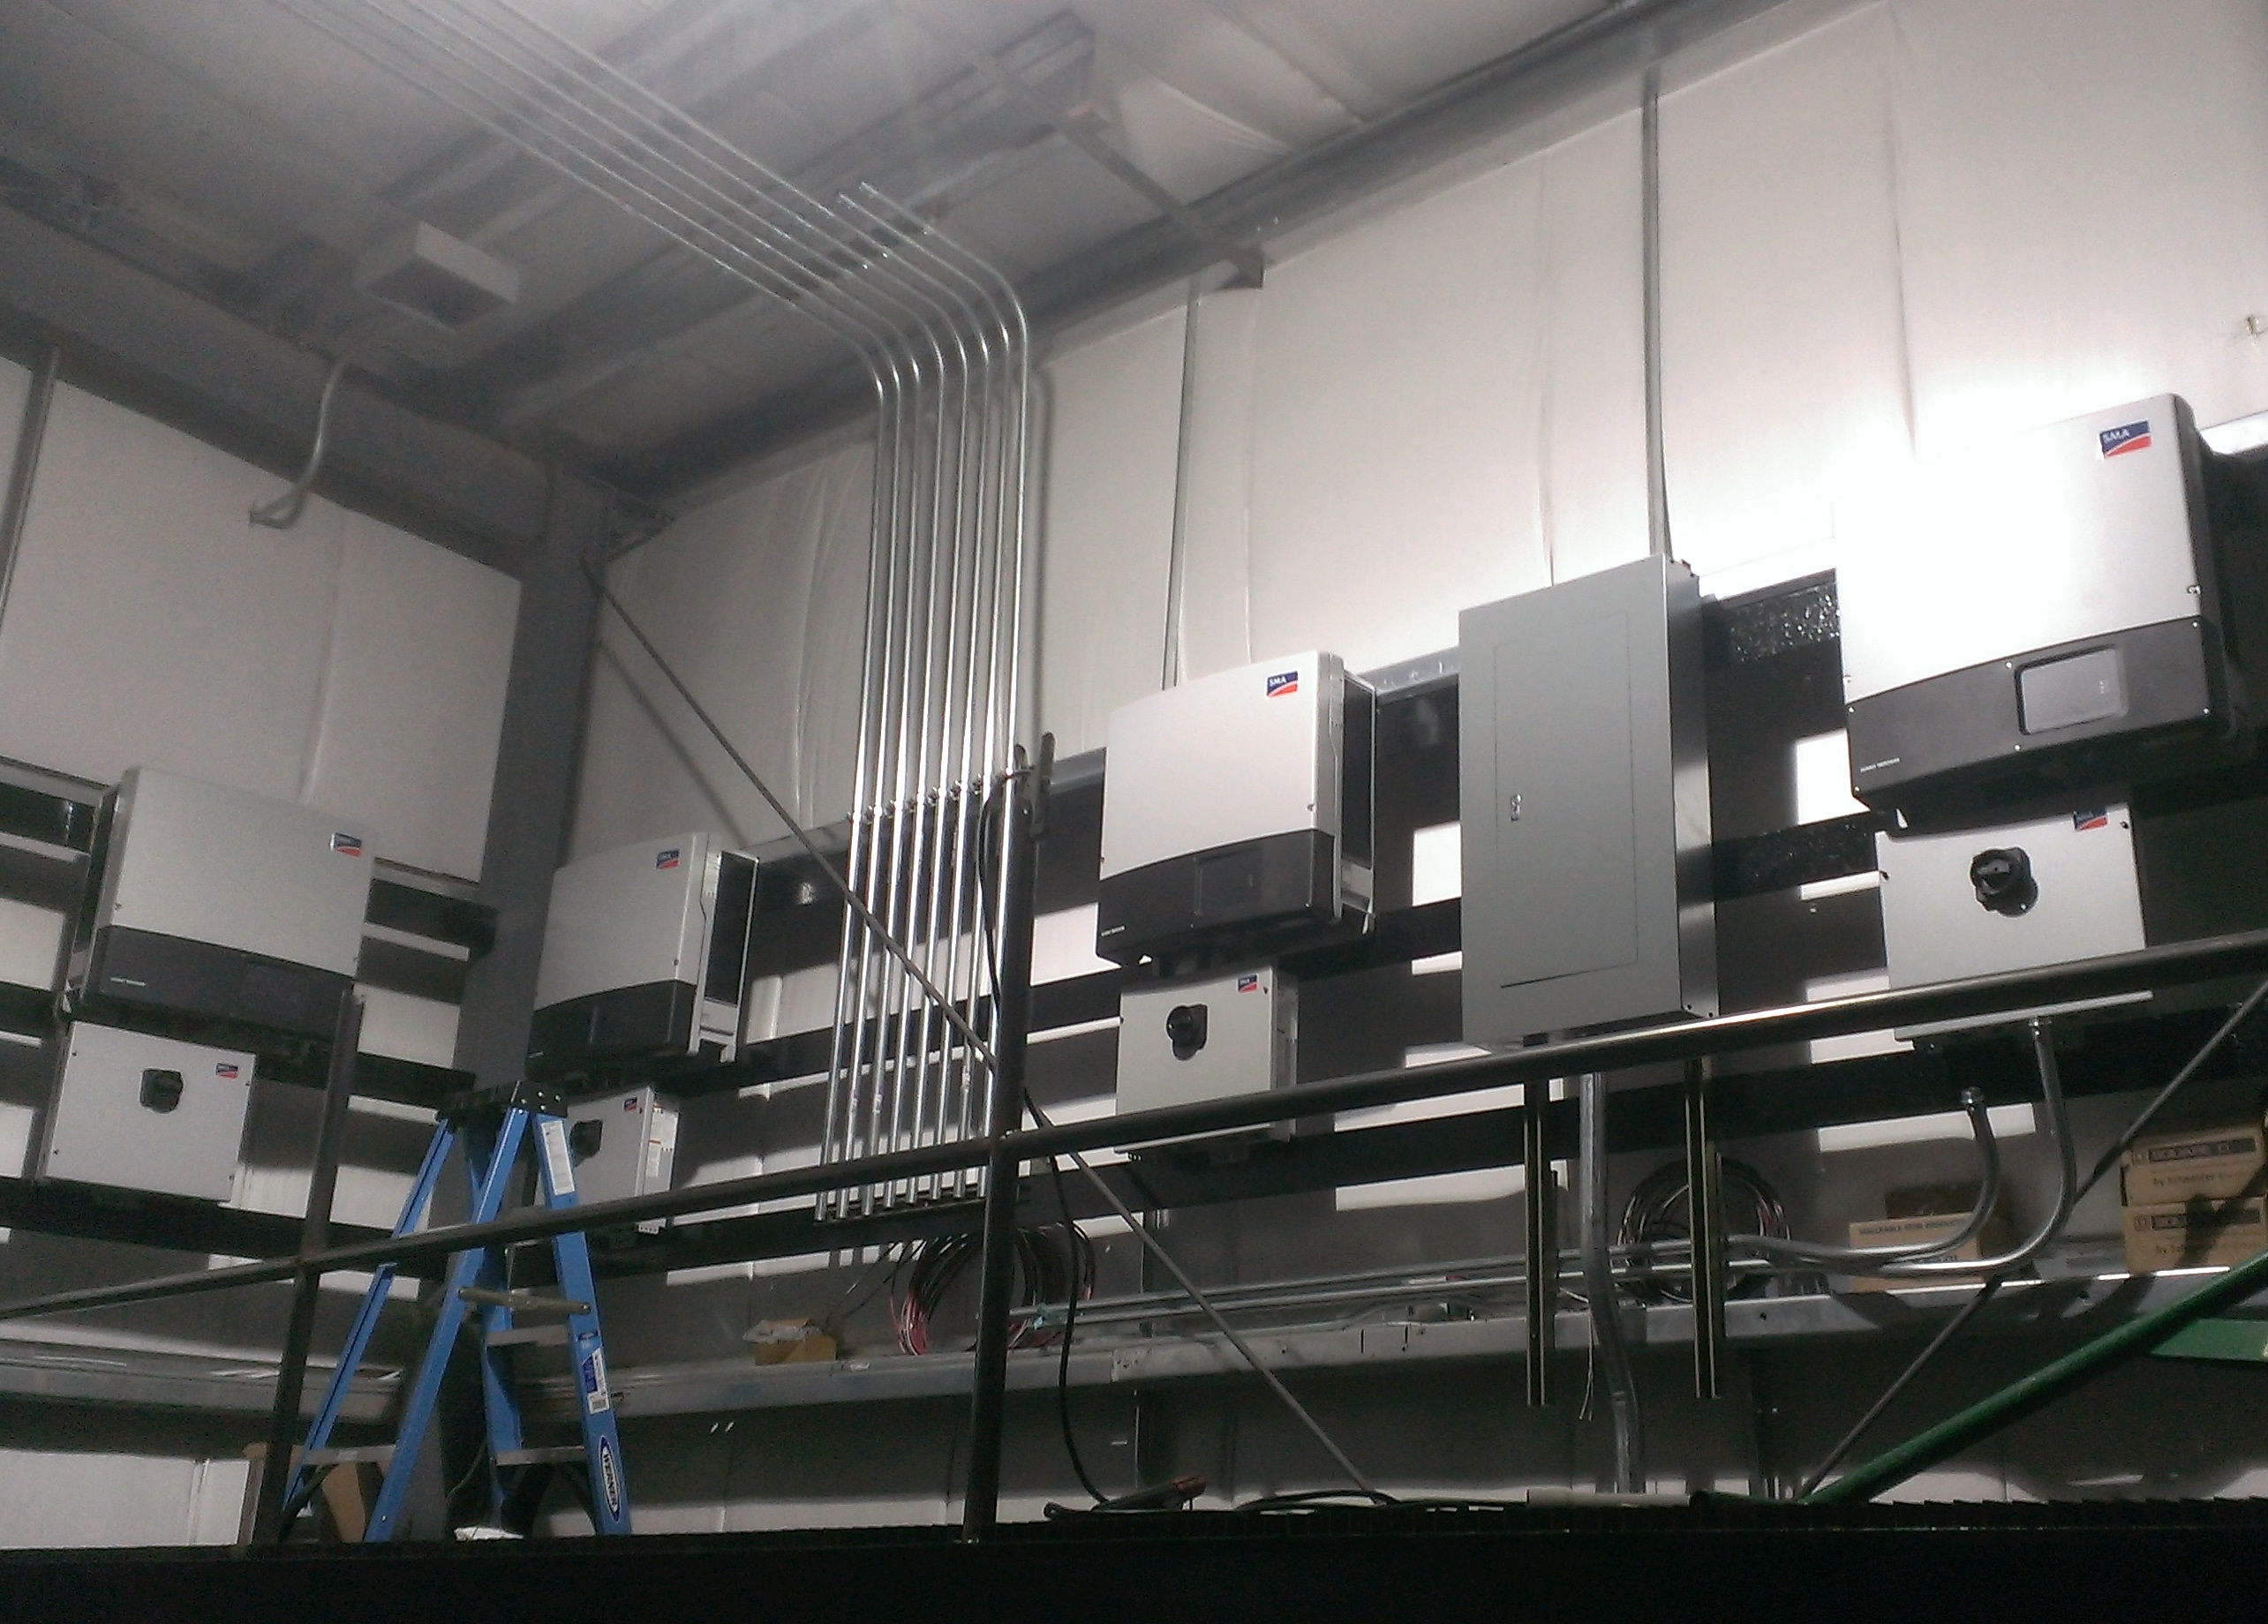 Further along in the inverter installation process, it's starting to take shape.